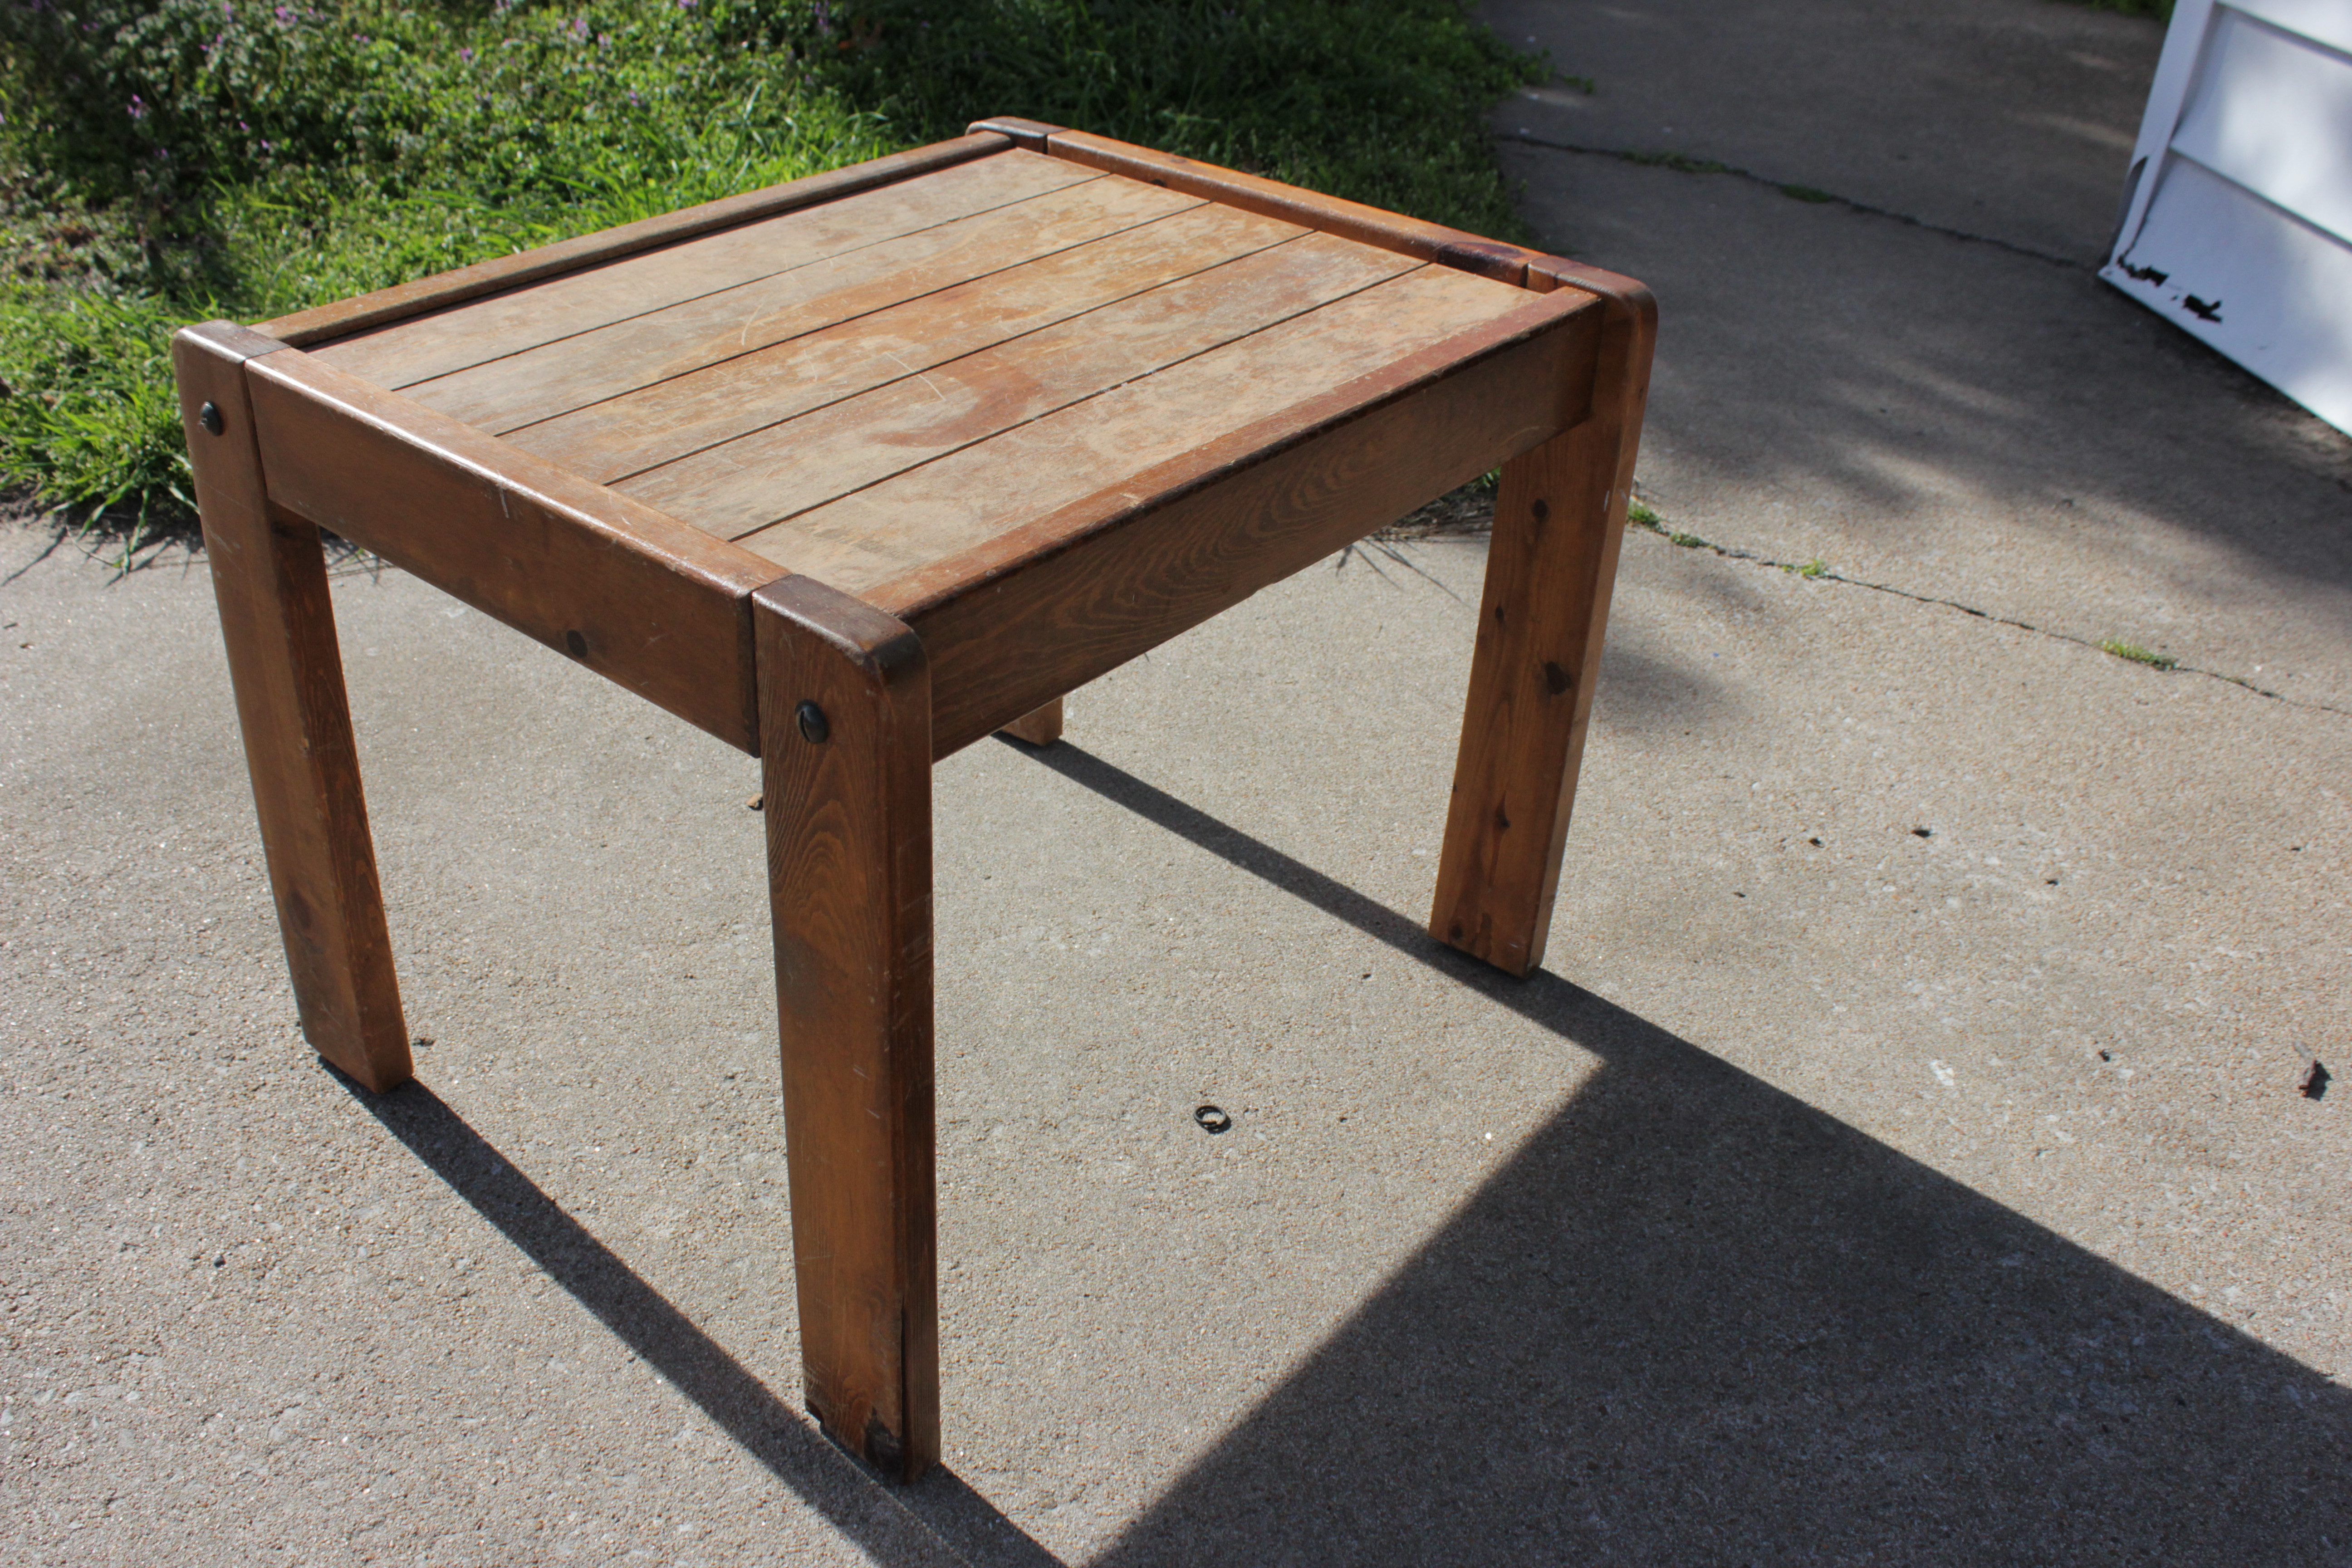 Best ideas about DIY Wood Table . Save or Pin DIY Wood Design Cool Dummies guide to woodworking Now.